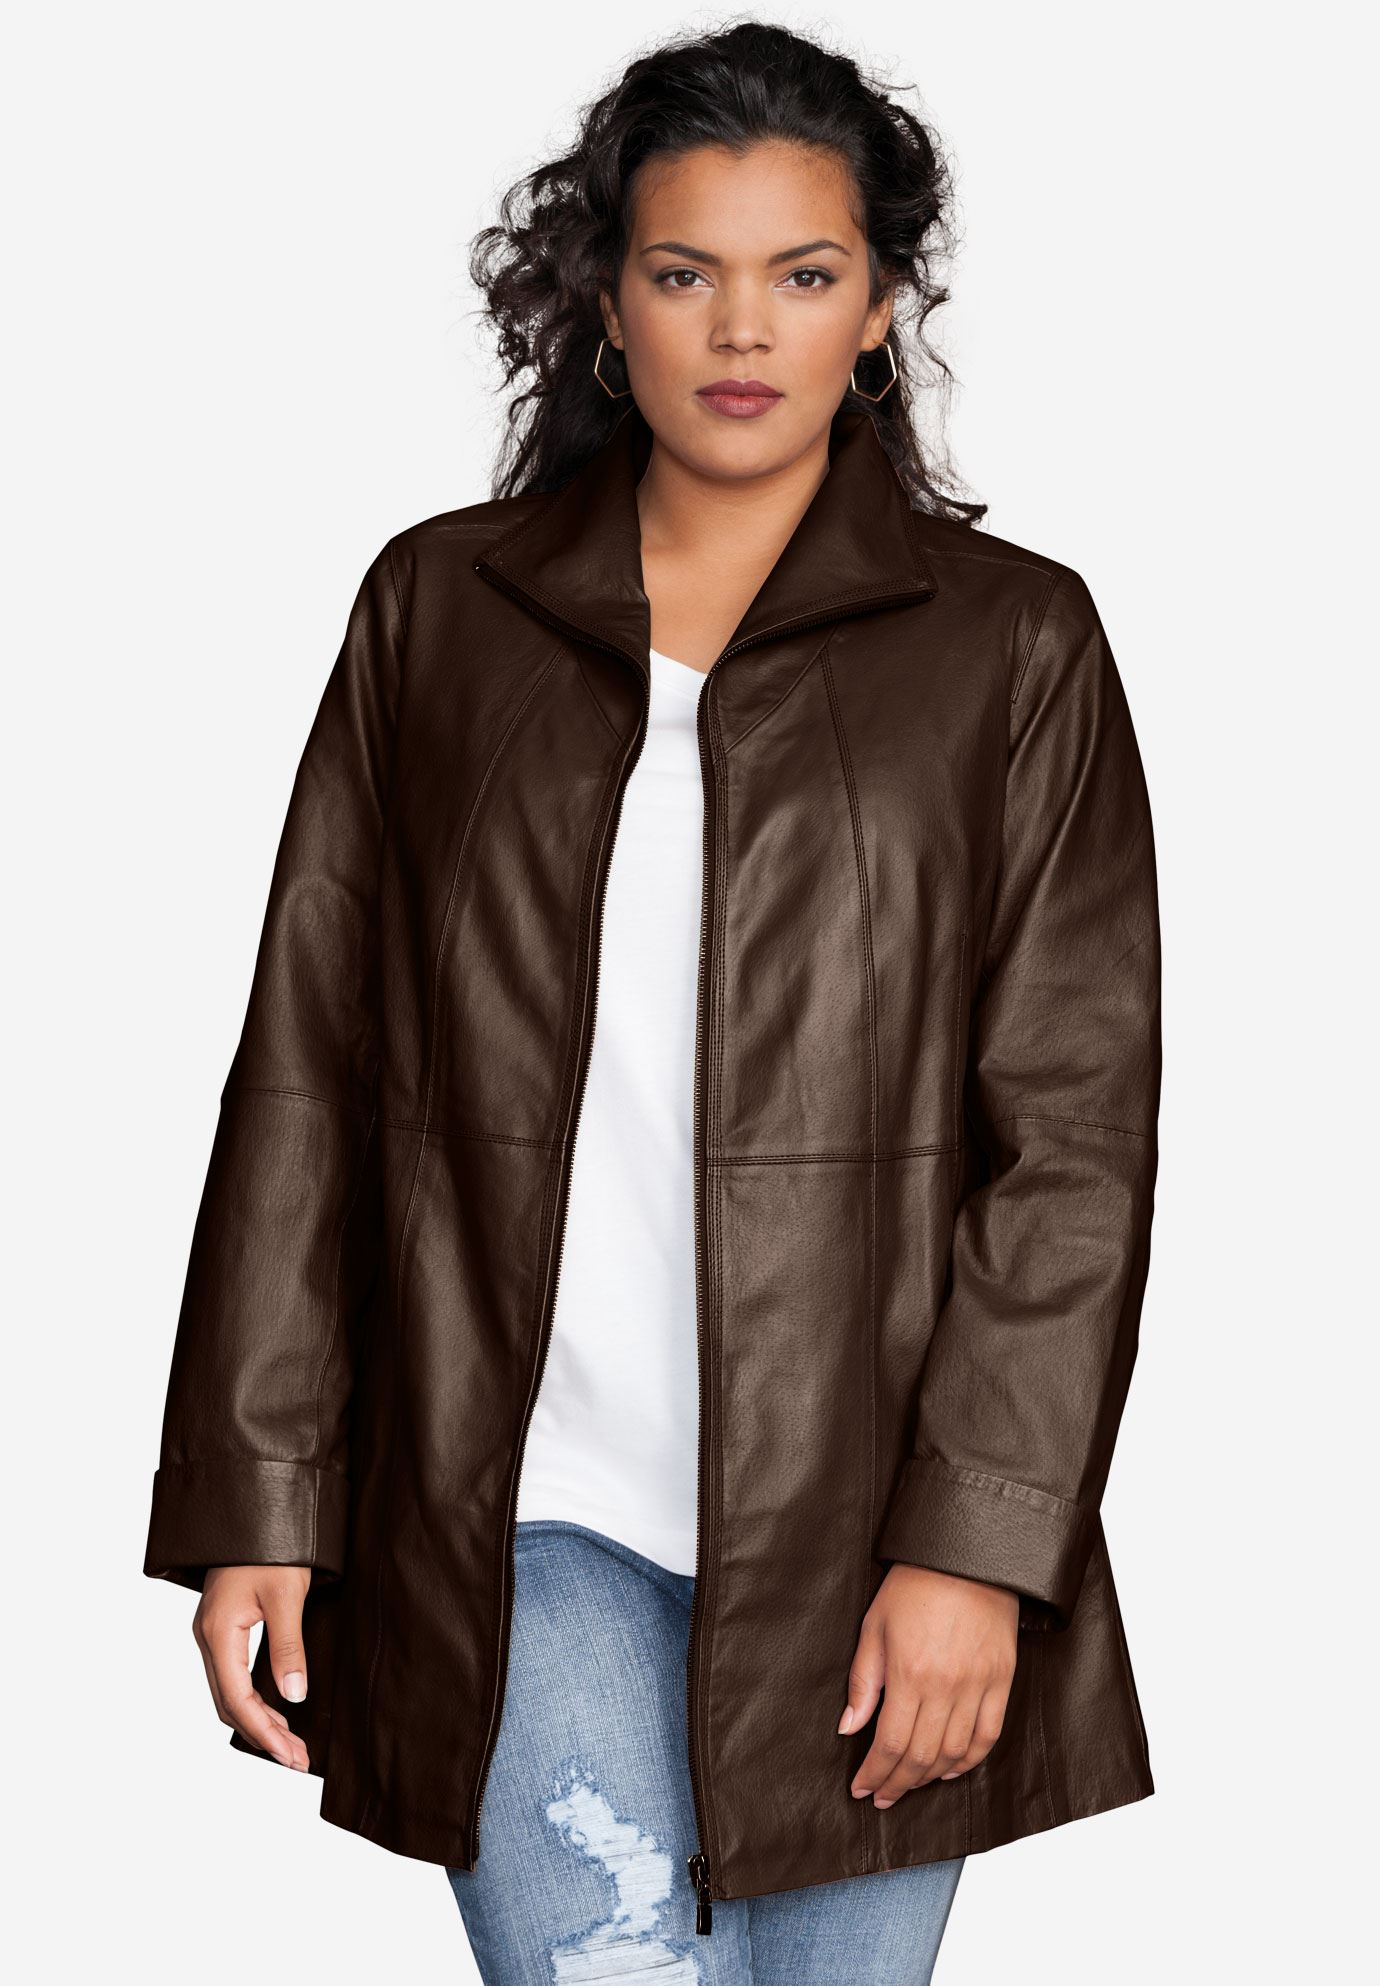 plus size blazers leather a-line jacket ODLPDZZ